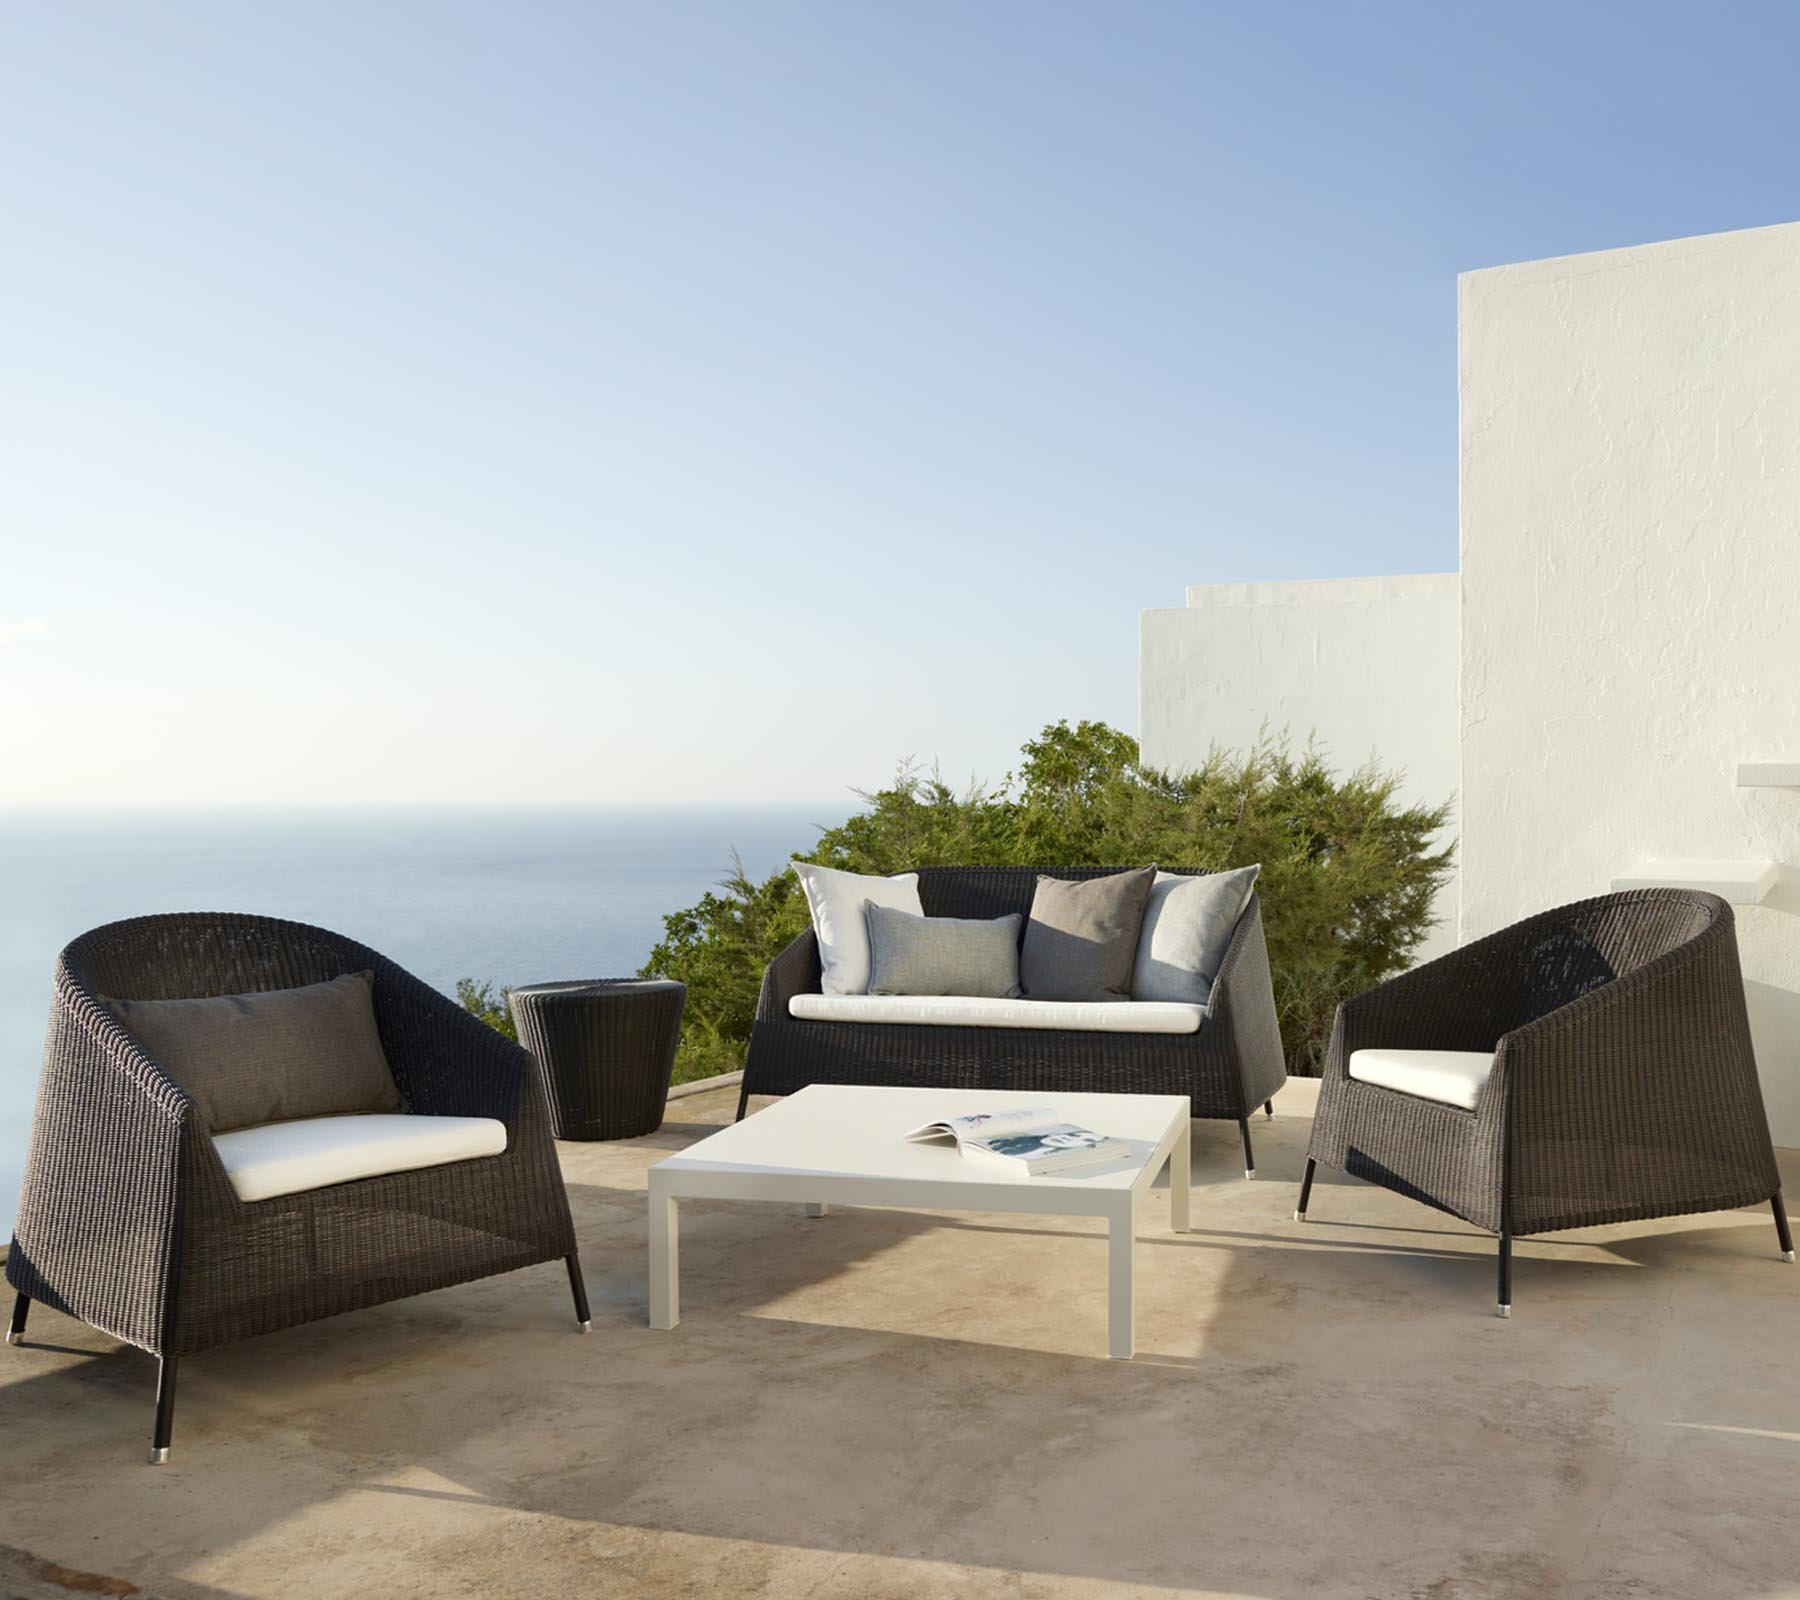 Kingston 2 Seat Sofa from Cane-line, designed by Foersom & Hiort-Lorenzen MDD